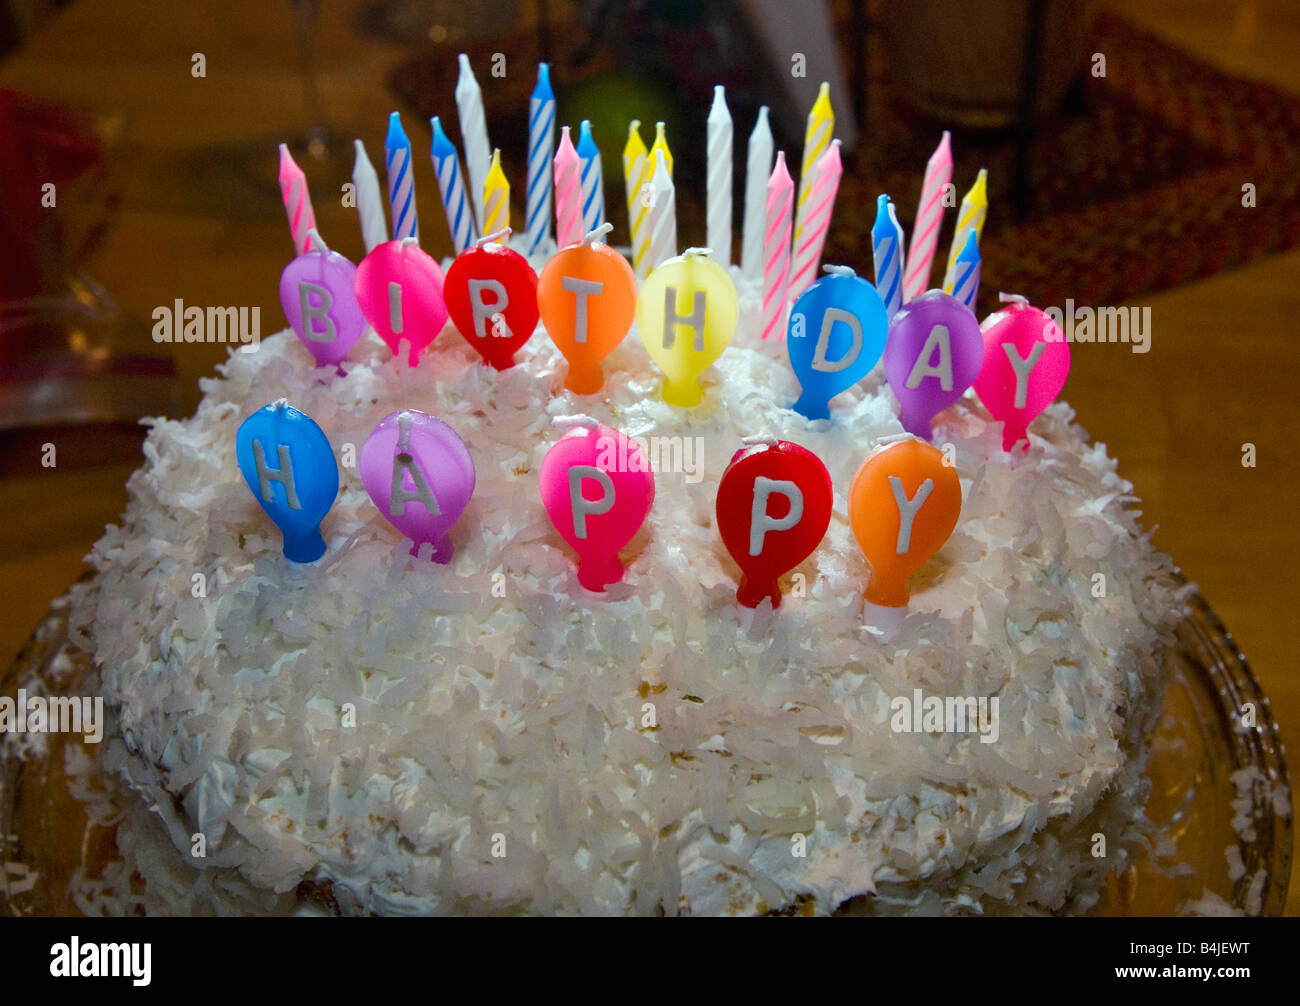 Pleasing Birthday Cake Coconut Dessert Eat Icing Portion Treat Stock Photo Funny Birthday Cards Online Alyptdamsfinfo